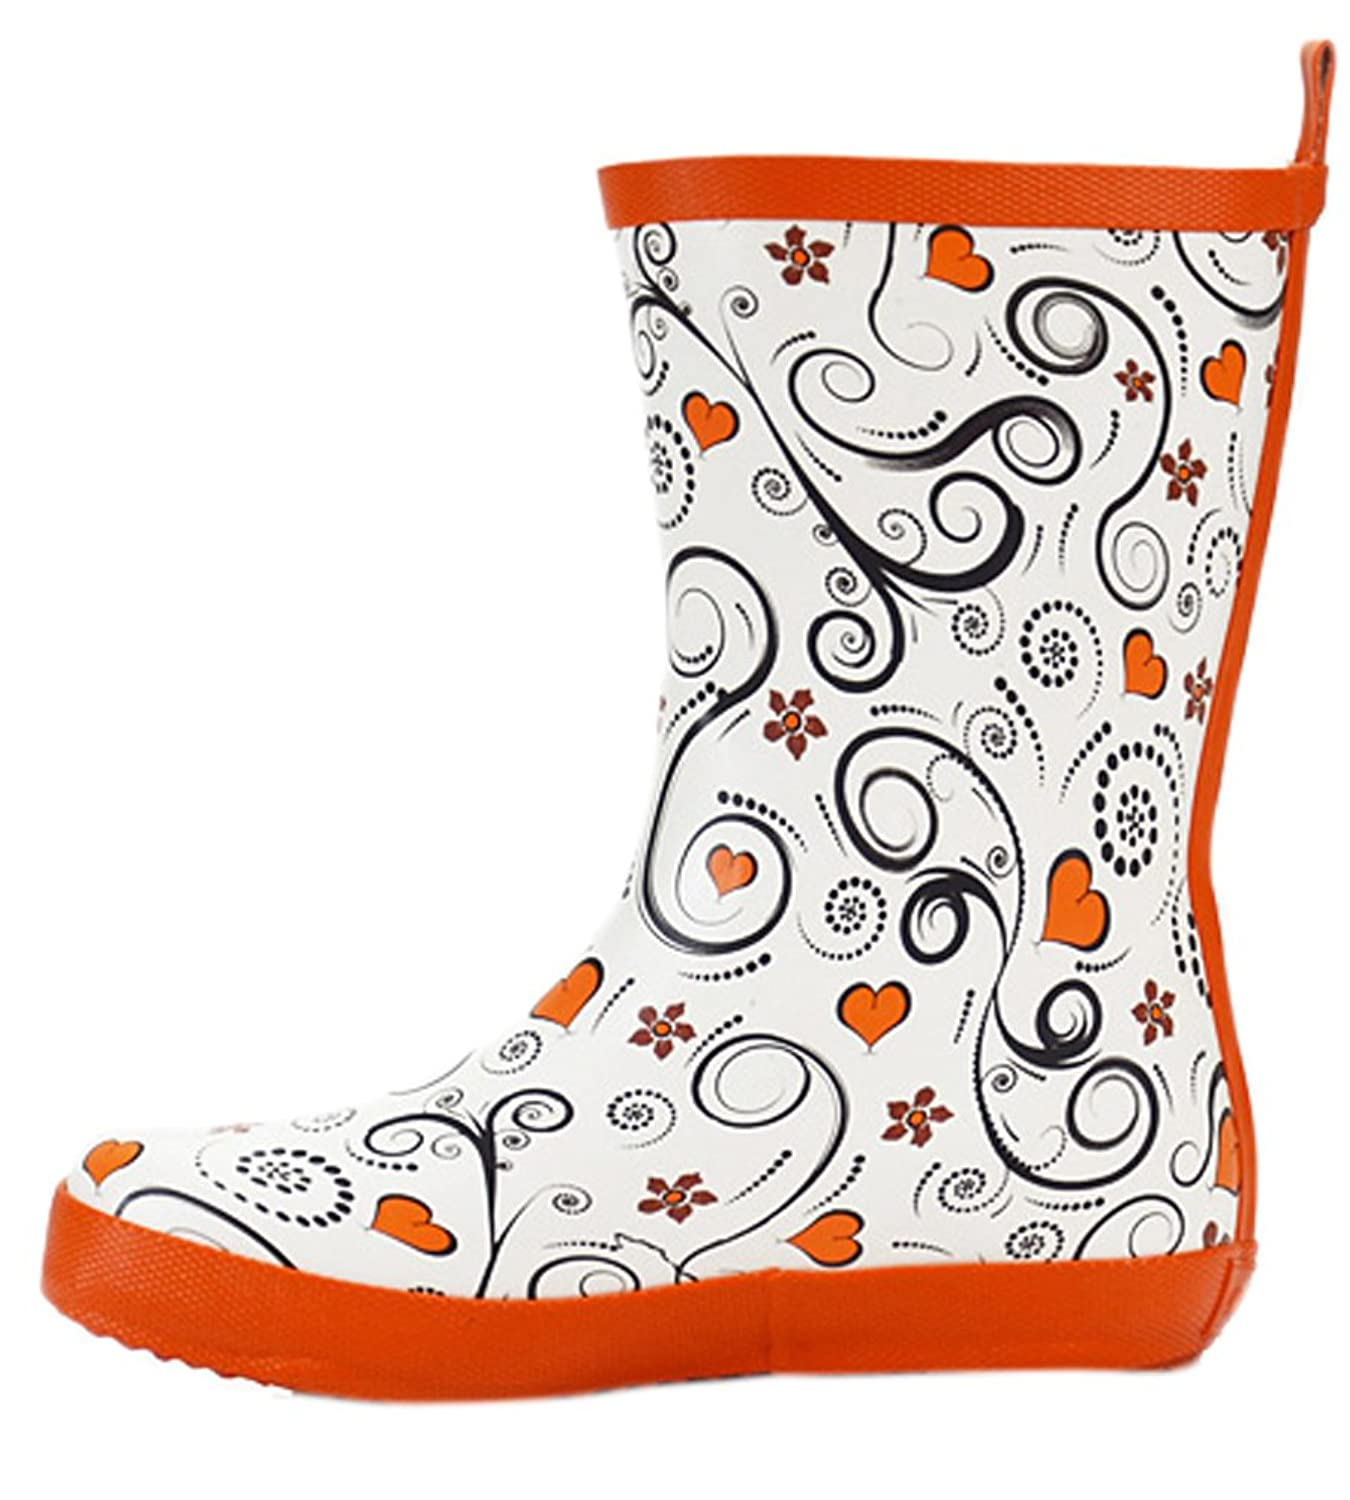 Ace Women's Floral Cute Waterproof Anti-skid Pull-on Work Boots Rain Boot